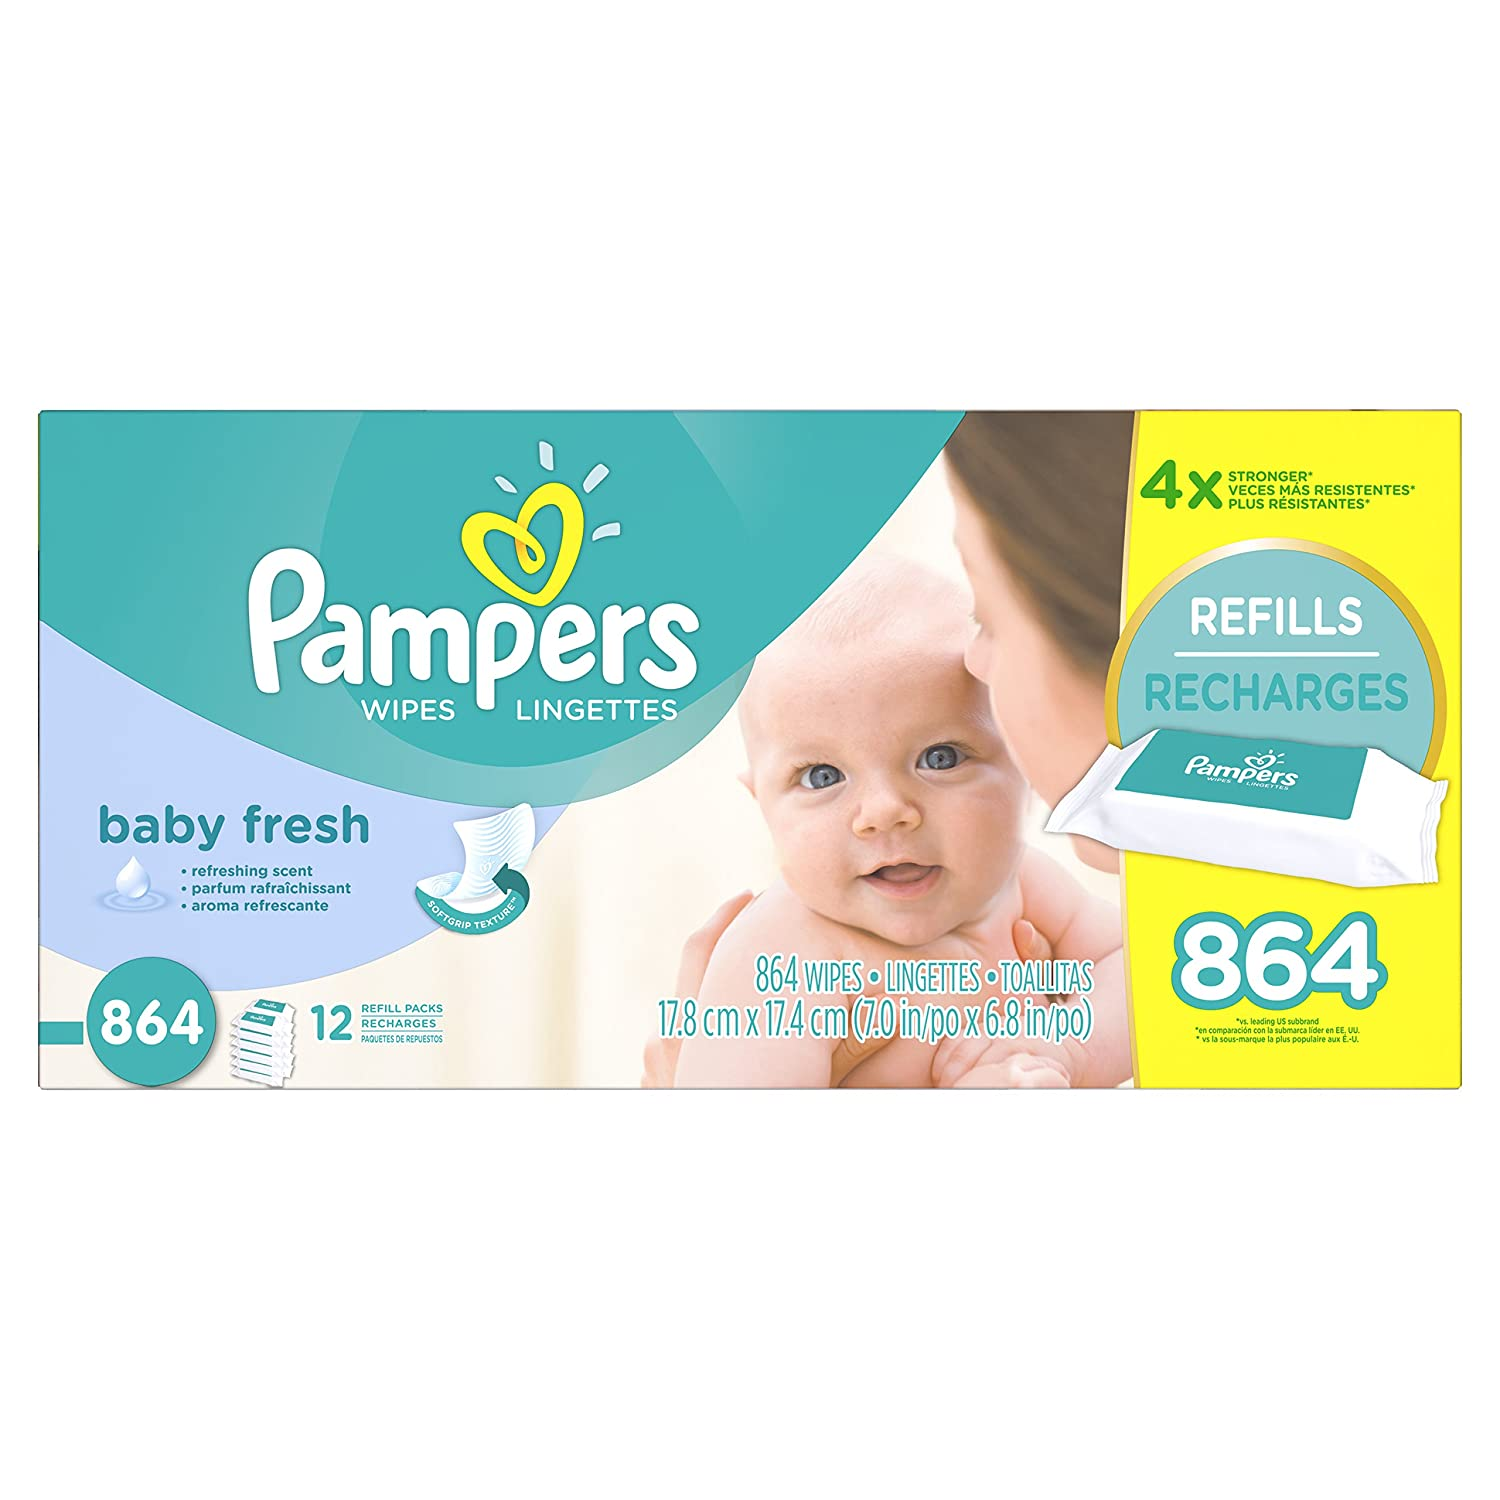 Pampers Baby Fresh Water Baby Wipes 12X Refill Packs, 864 Count 37000836759